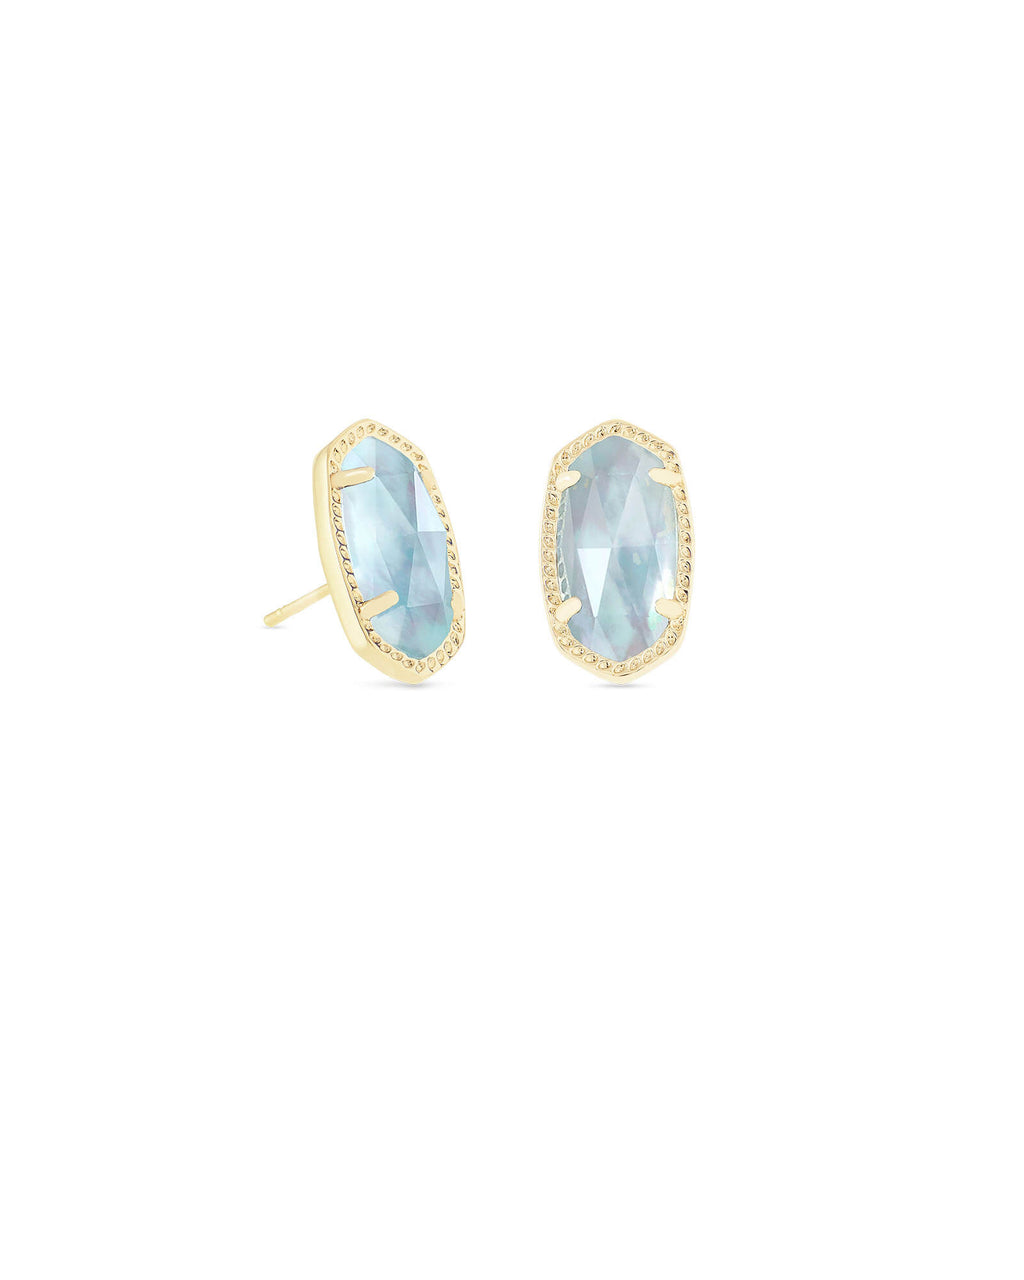 Kendra Scott Ellie Gold Stud Earrings In Light Blue Illusion March Birthstone - Fly Boutique